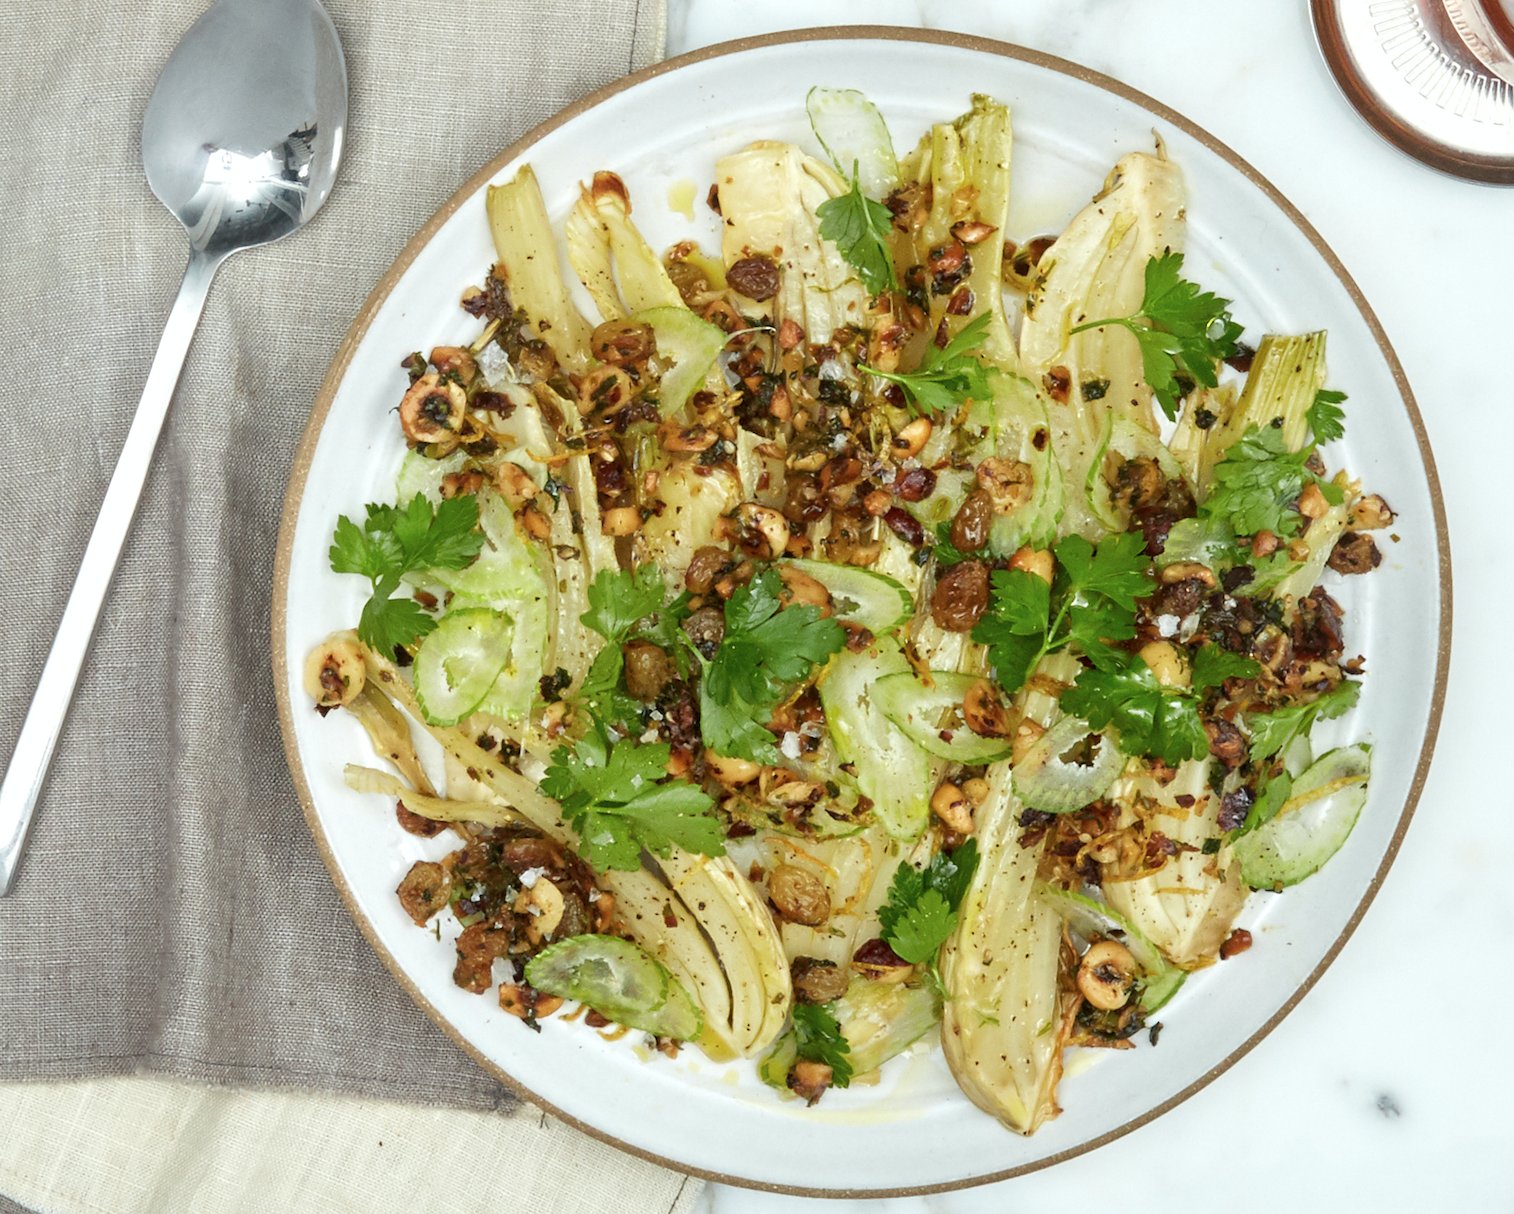 Fennel with a nut and raisin slaw on a plate